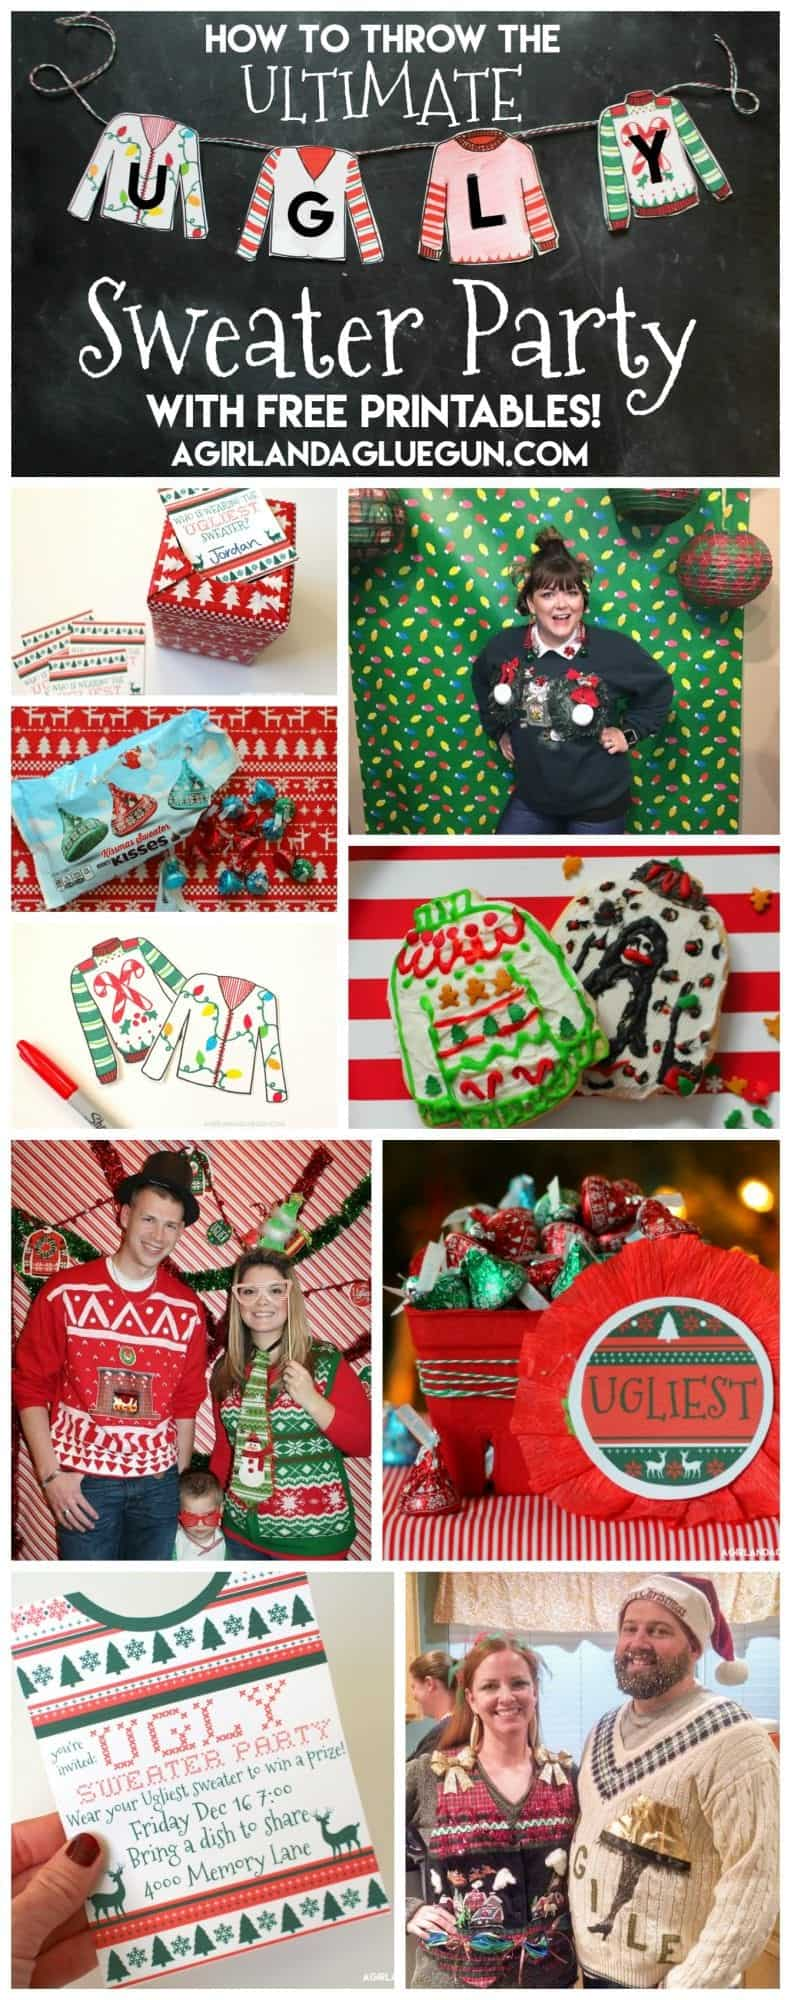 how-to-throw-the-ultimate-ugly-sweater-party-with-free-printables